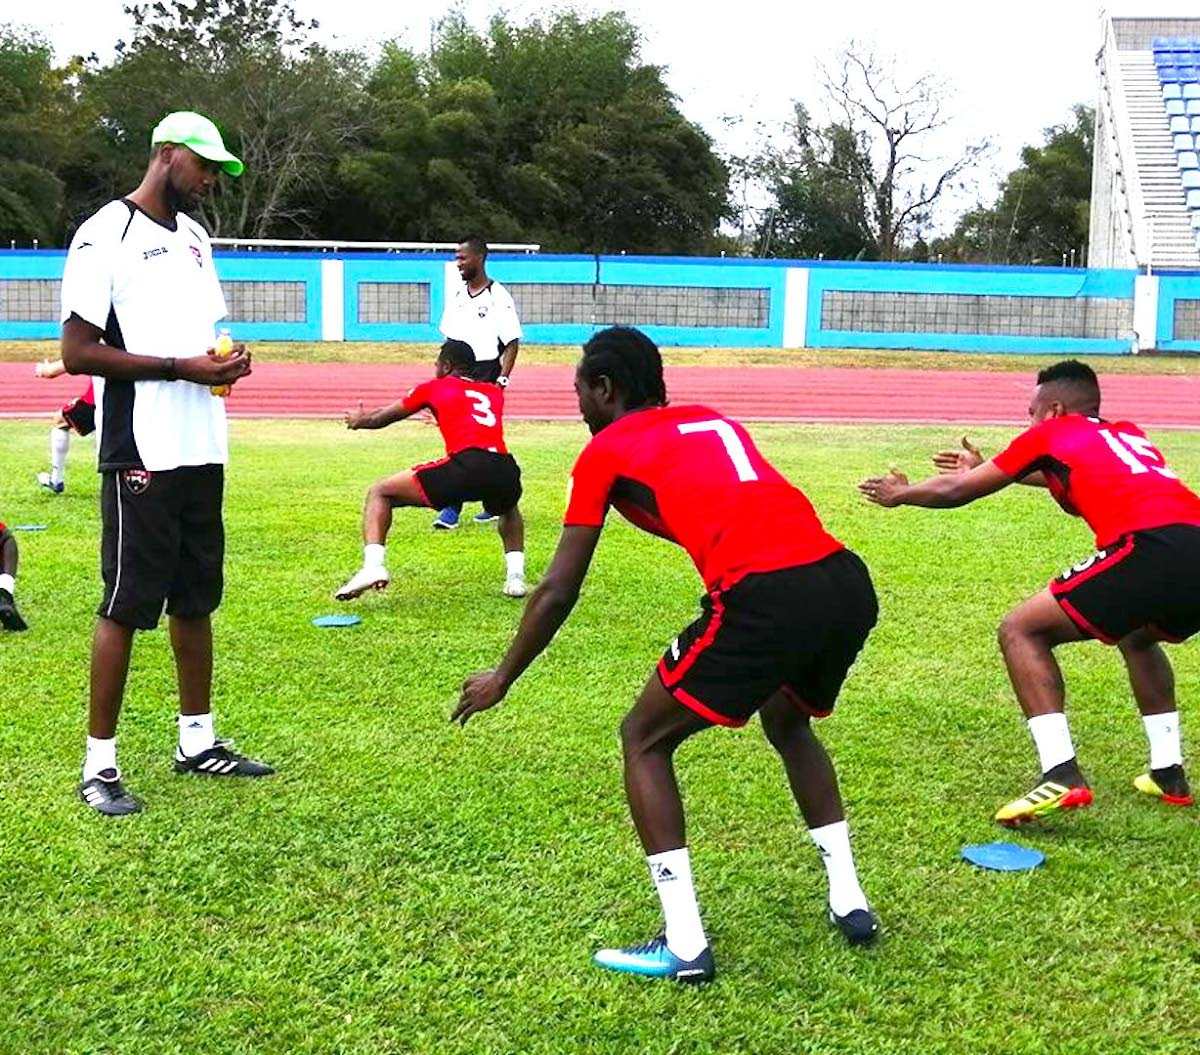 TT men's football coach Dennis Lawrence, left, conducts a training session at the Ato Boldon Stadium in Couva yesterday. PHOTO BY TTFA MEDIA